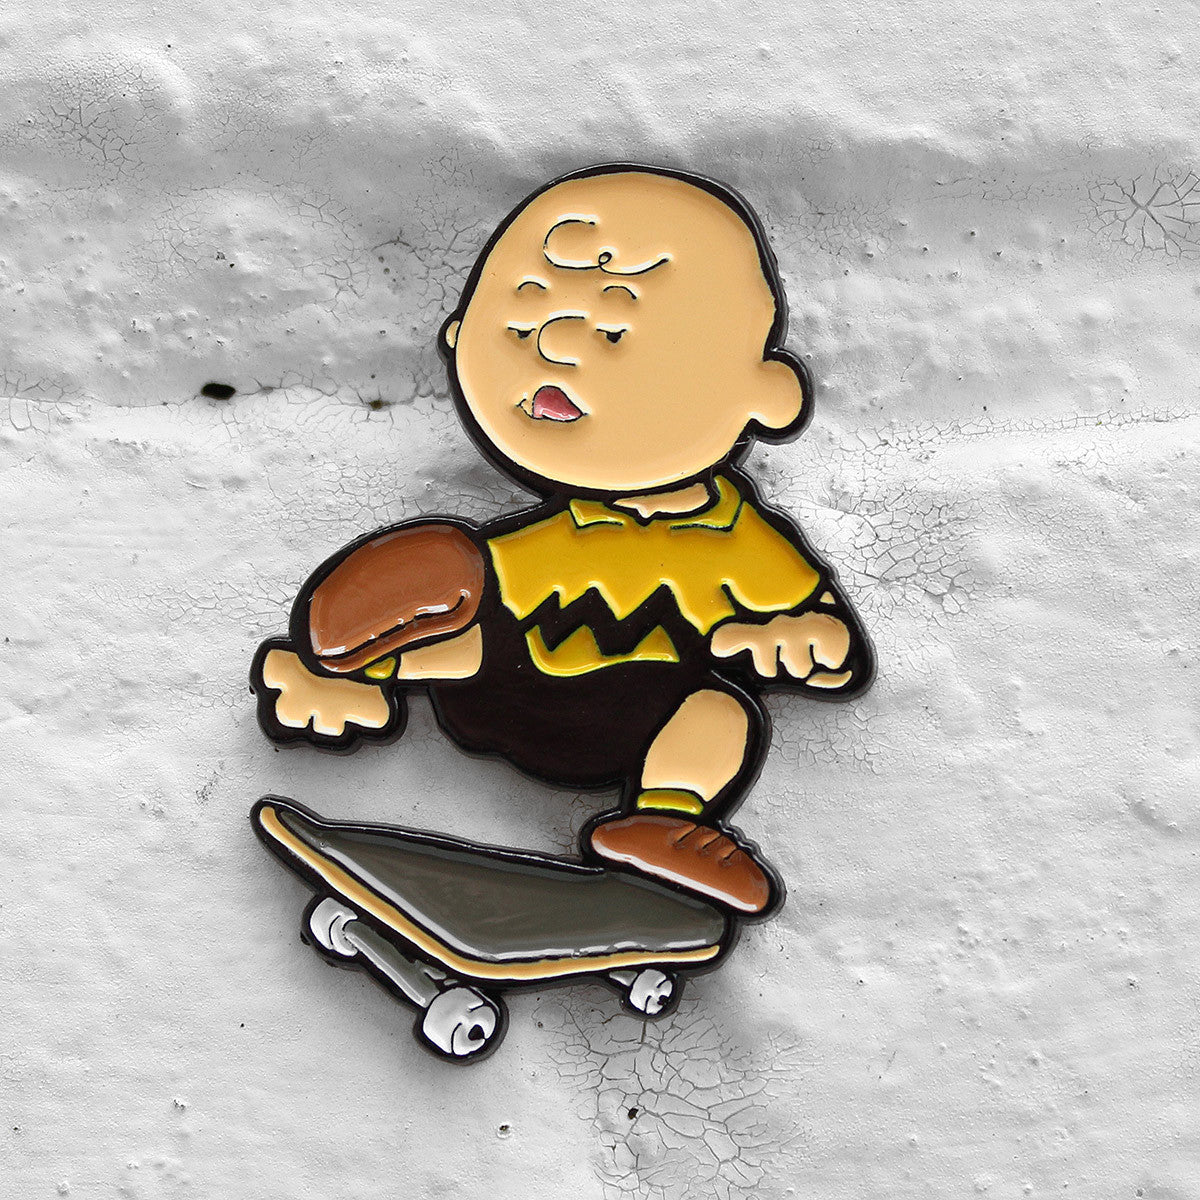 Pindejo one foot charlie brown pin badge fusshop pindejo one foot charlie brown pin badge voltagebd Image collections